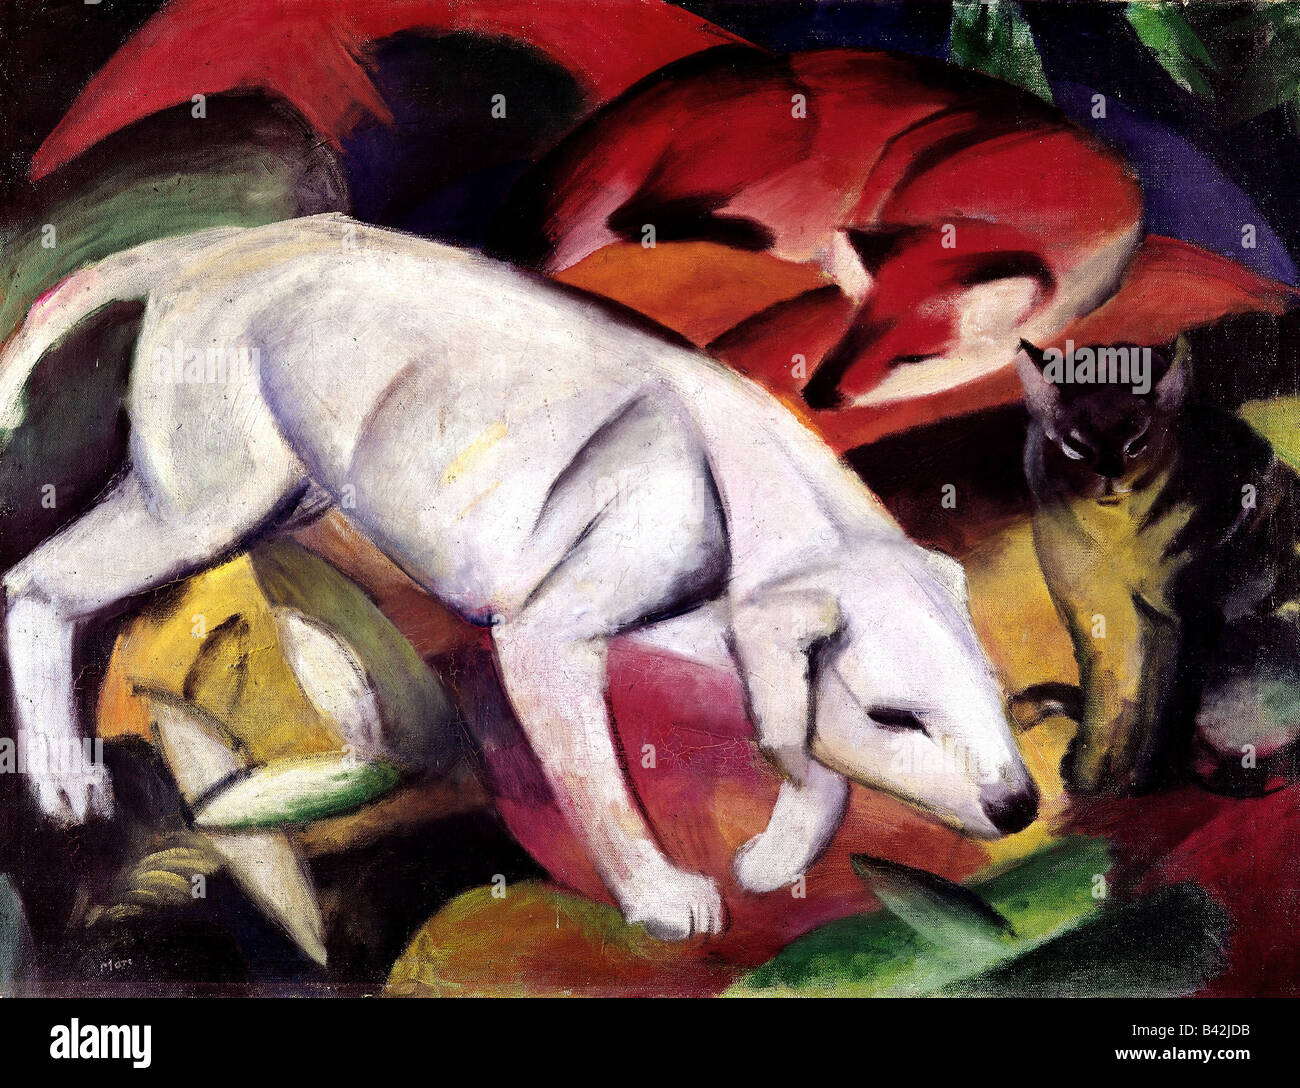 Bellas artes, Marc, Franz, 8.2.1880 - 4.3.1916, pintura, 'Dog, Fox y cat', (Hund, Fuchs und Katze), 1912, Imagen De Stock